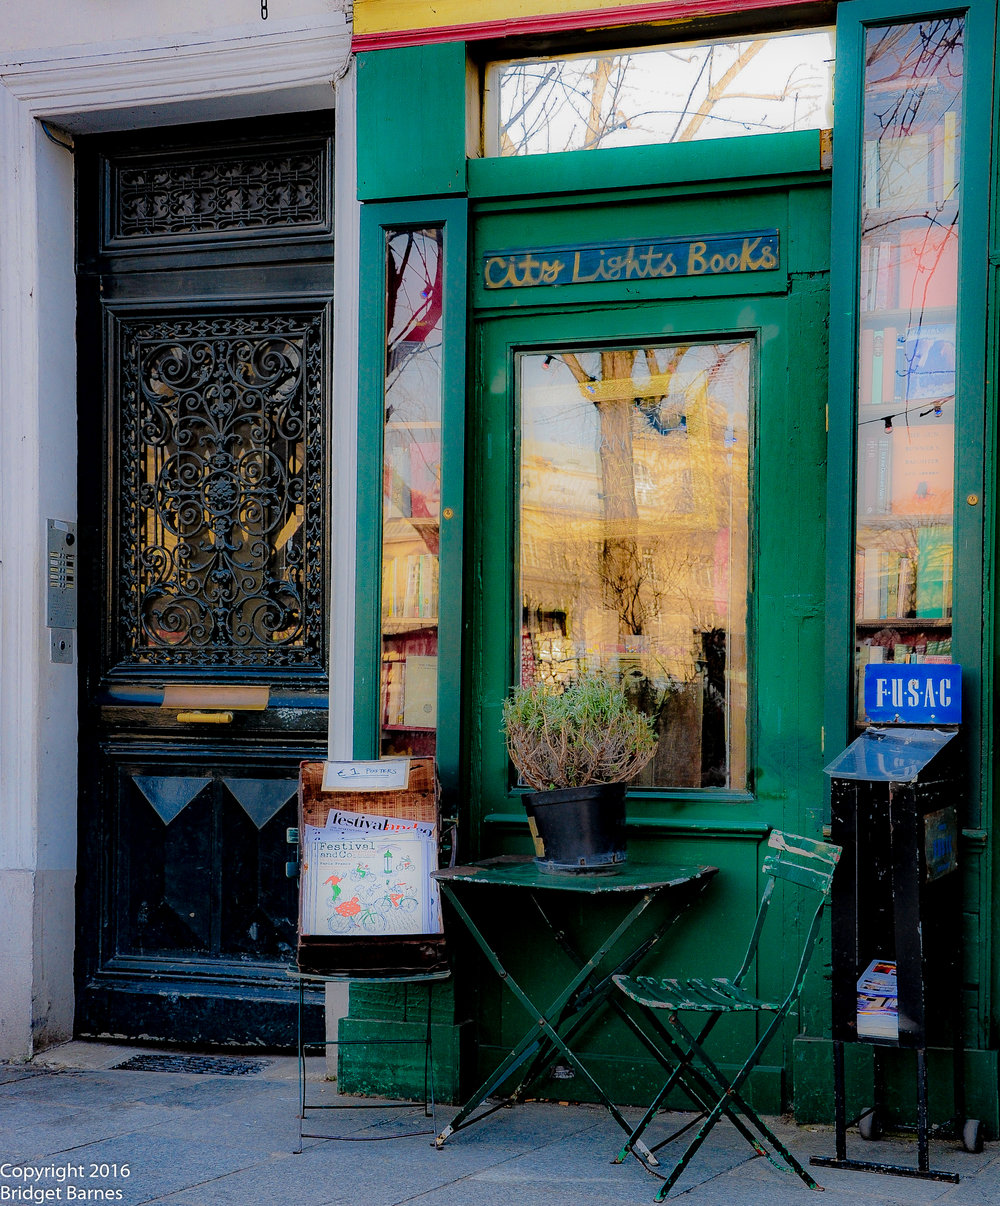 Not only can you find a perfect addition to your literary collection, but you can also snap a few quintessentially Parisian photos while you visit Shakespeare and Company.